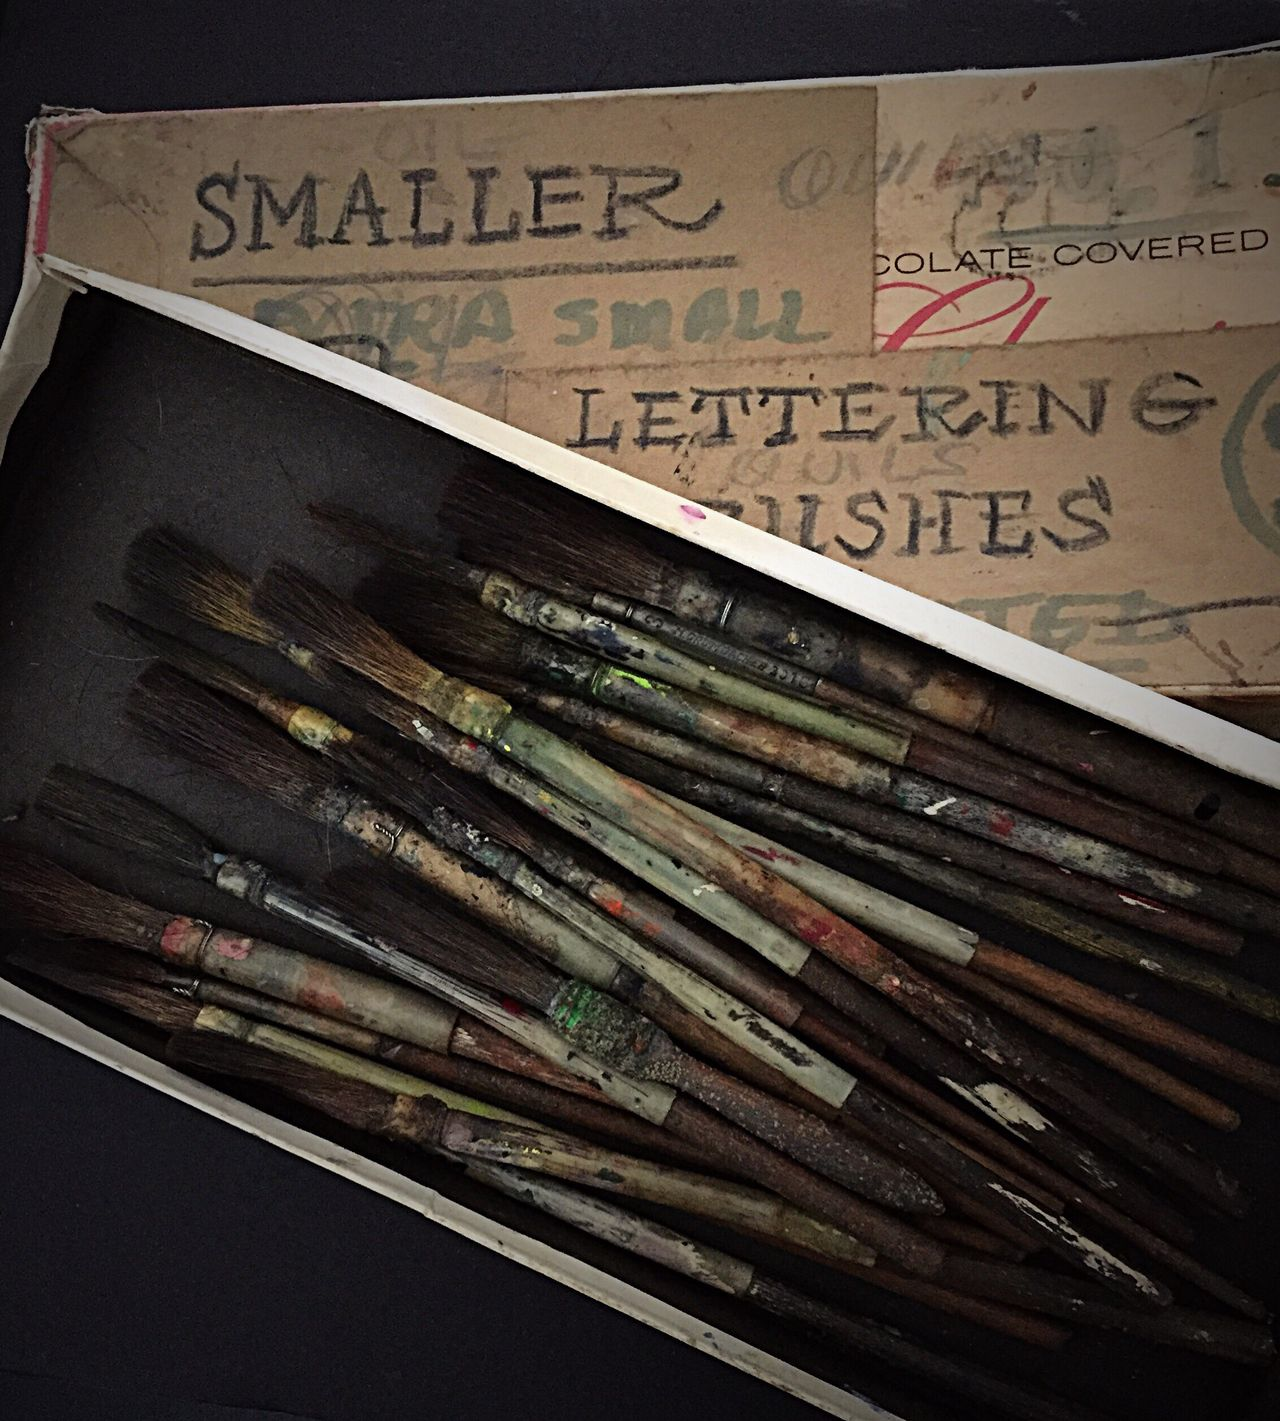 Tools of my Grandfather's Trade Paint Brushes Sign Painter Hand Lettering Worn Out & Wonderful  Worn Artistic Tools Paint Brush Obsolete Days Gone By Wabi-sabi Tools Of The Trade Entropy